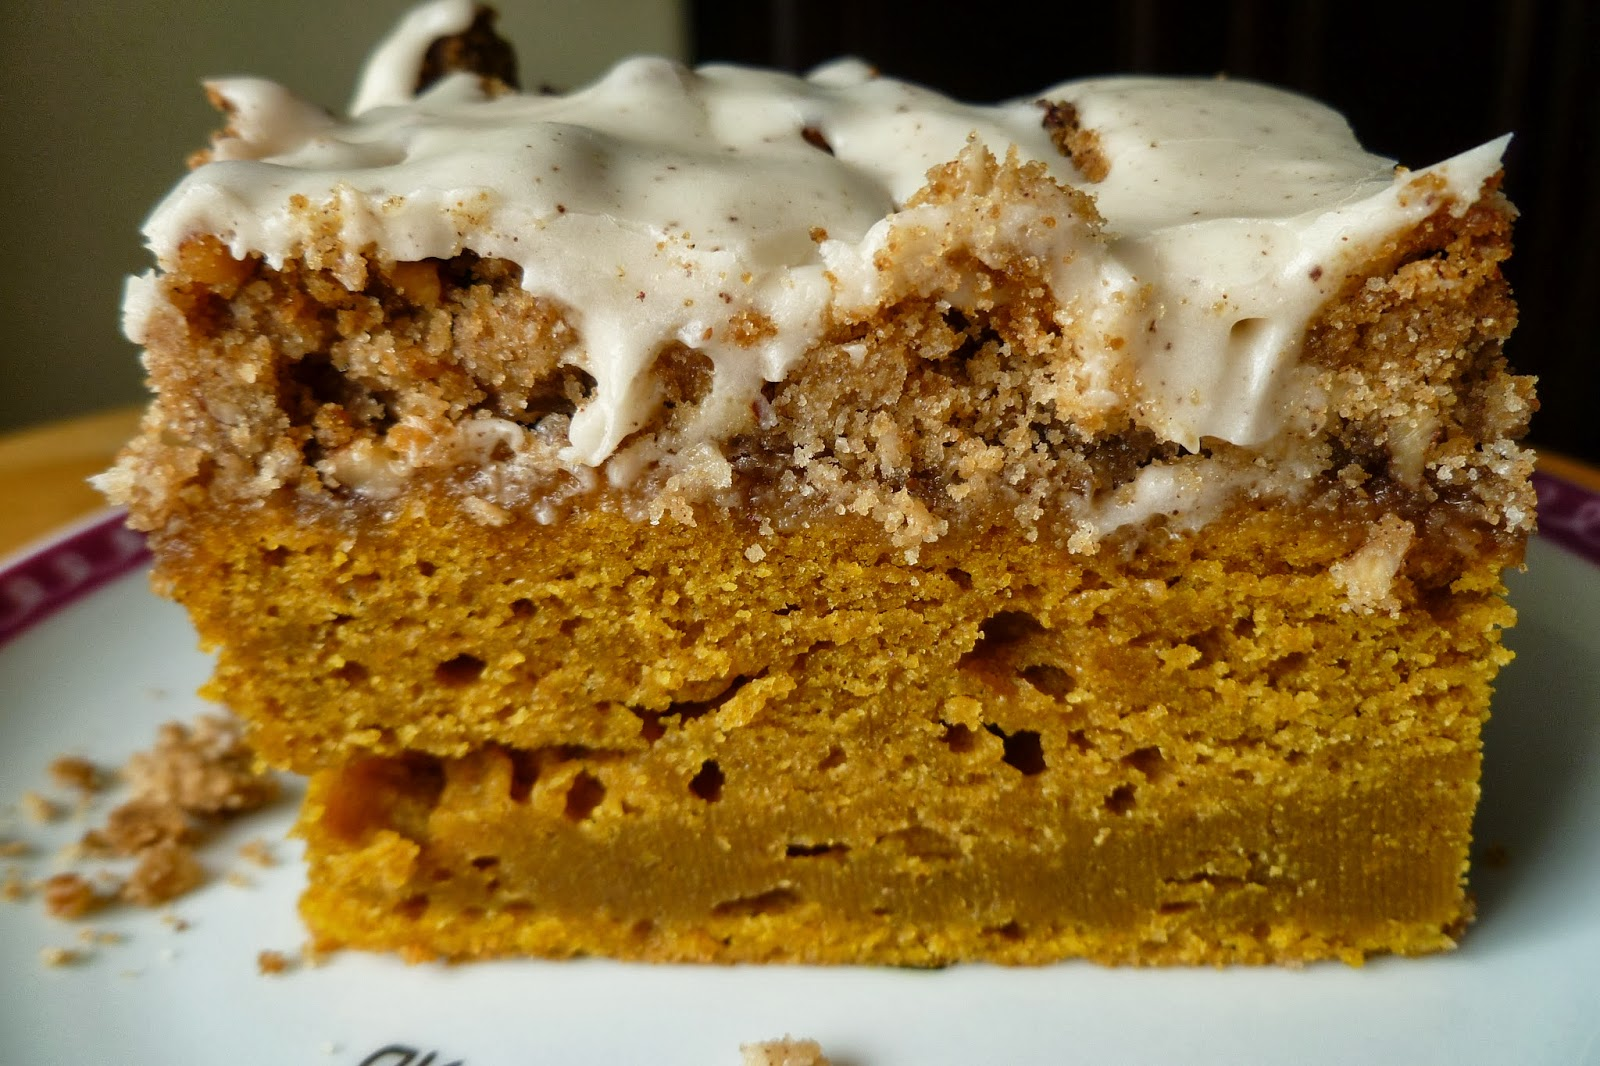 The Pastry Chef's Baking: Pumpkin Coffee Cake with Brown Butter Icing